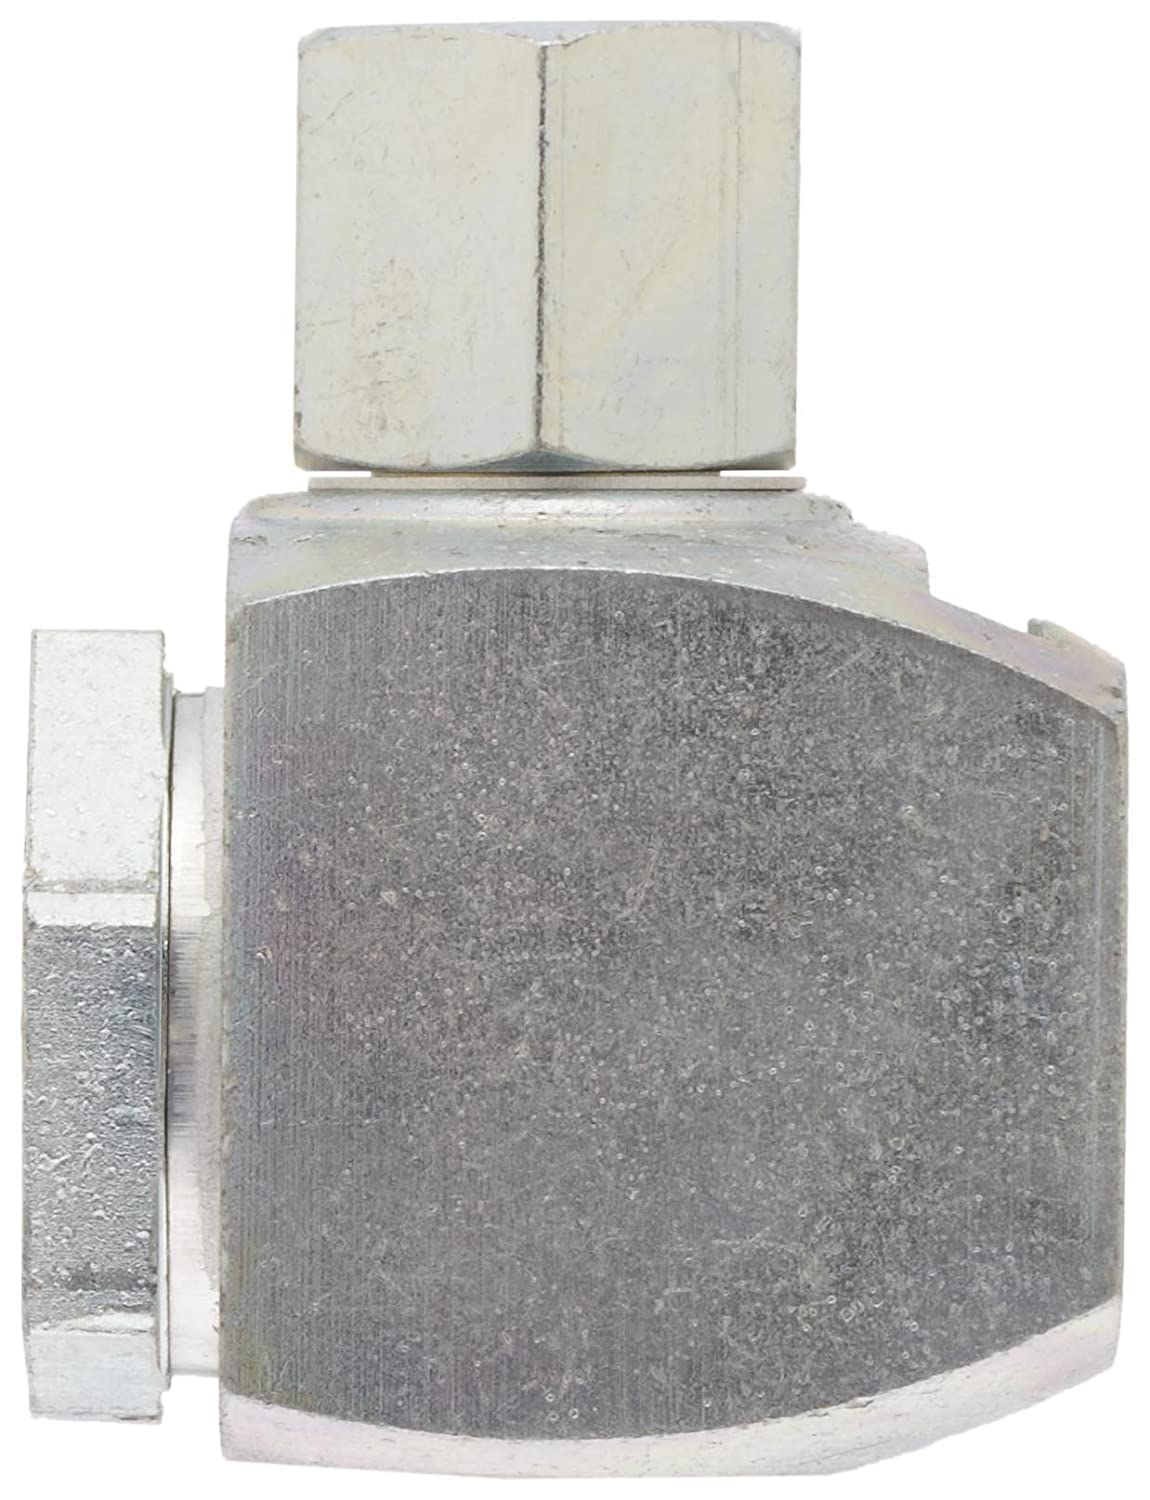 Standard Pull-On Type 1//8 Female NPTF 1//8 Female NPTF ORSNO24080 For Use with Standard or Giant Button Head Fittings Alemite 42030-A Button Head Coupler